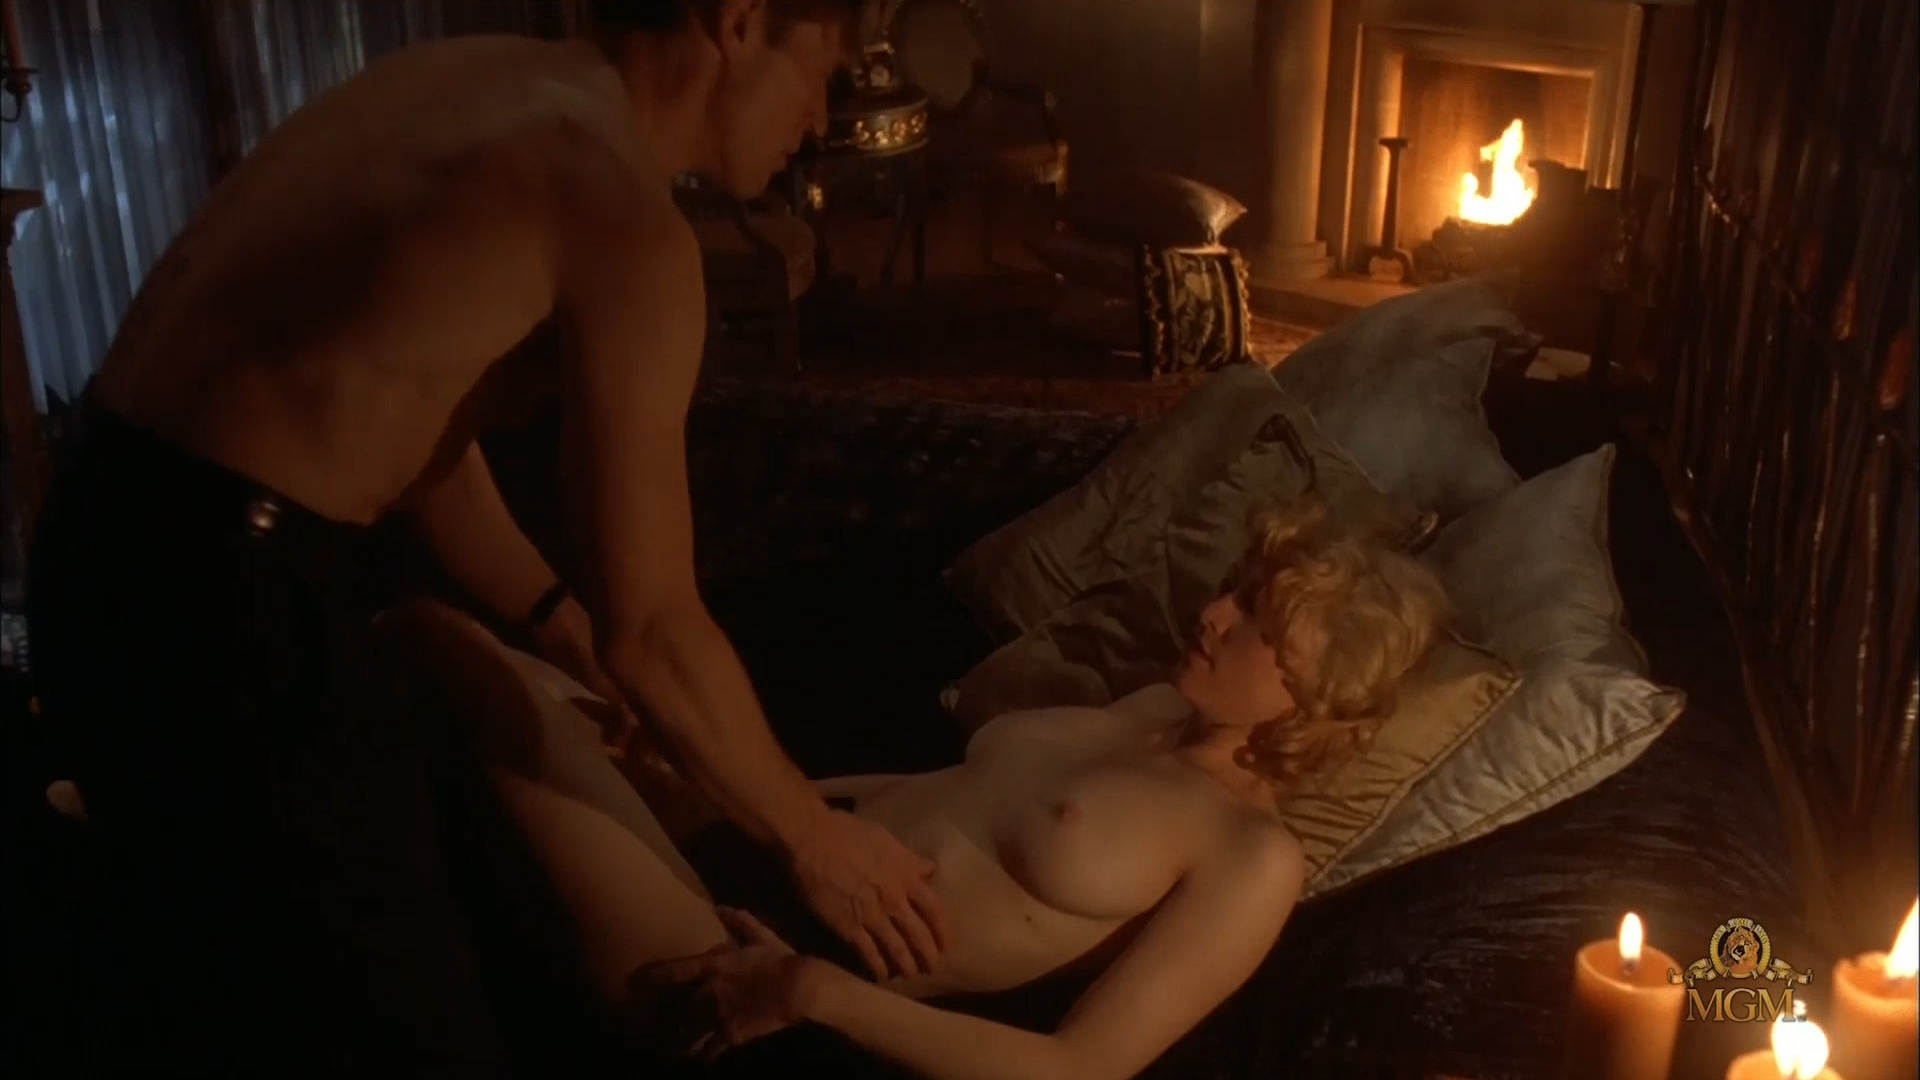 Madonna nude sex photos remarkable, rather